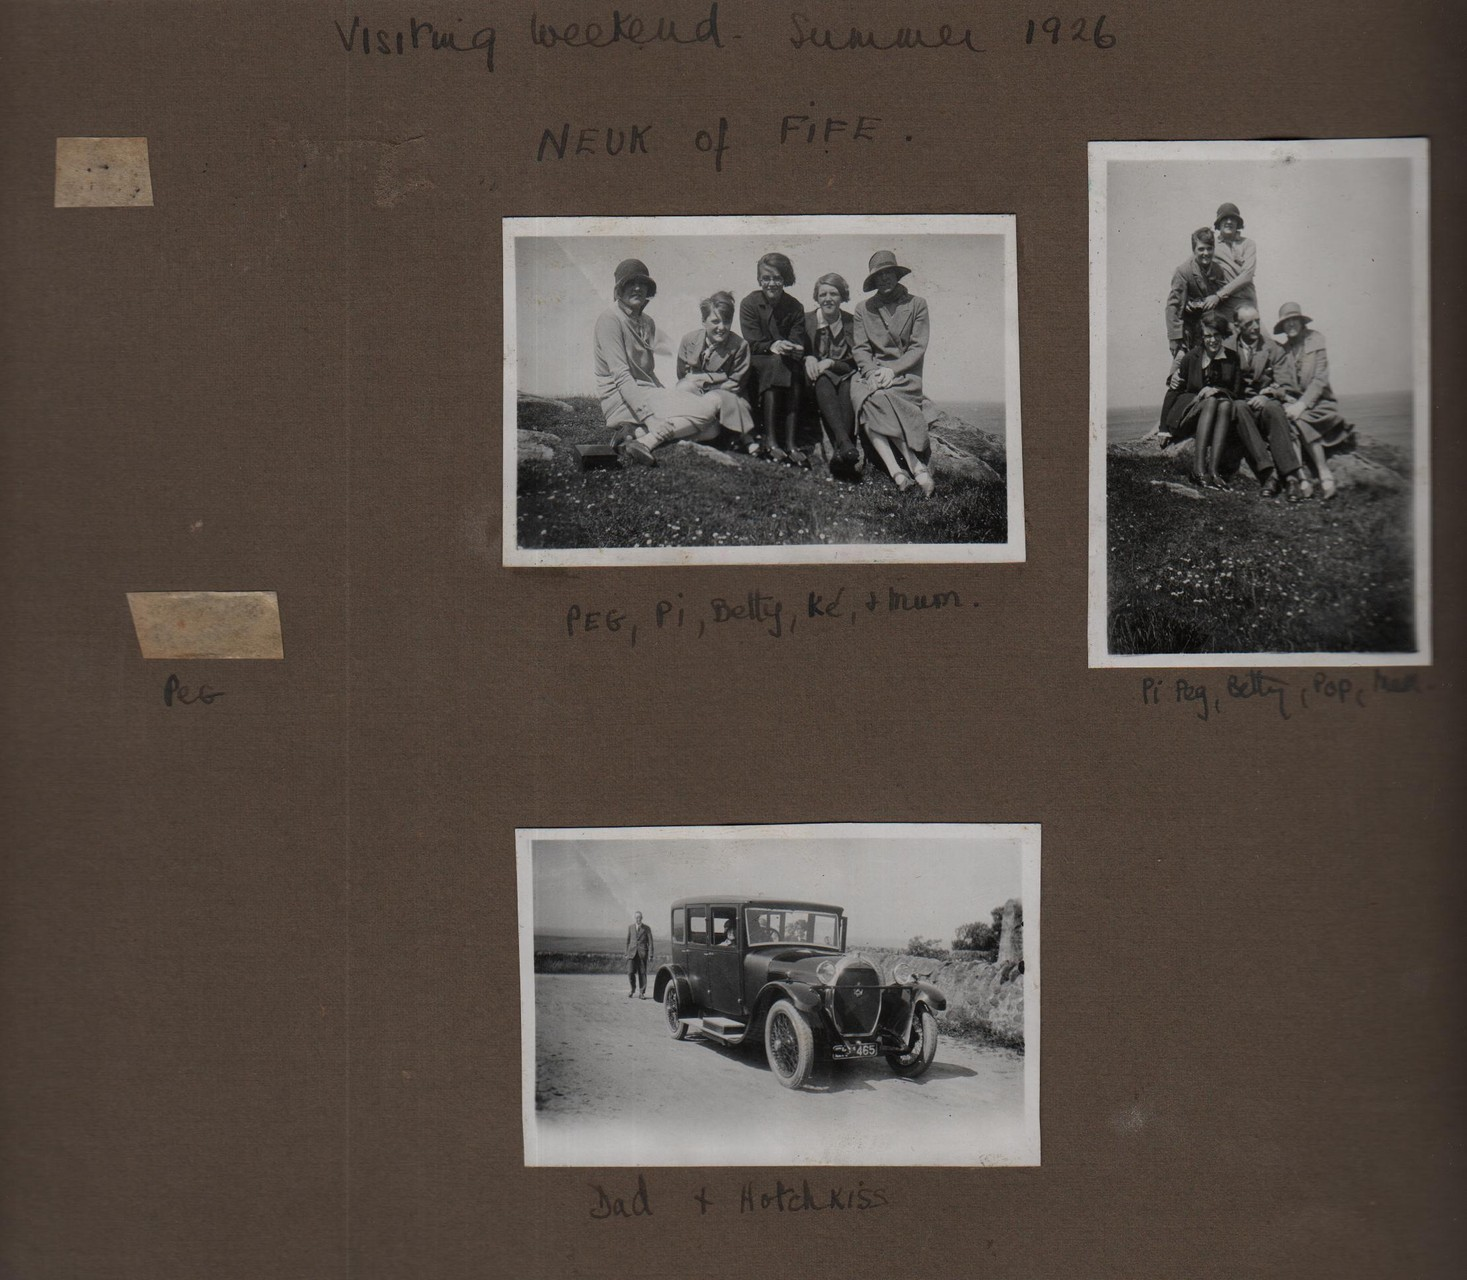 Visiting weekend Summer 1926 Neuk of Fife: Peg, Pi, Betty, Ke and Mum; Pi, Peg Betty, Pop, Mum; Dad and Hotchkiss